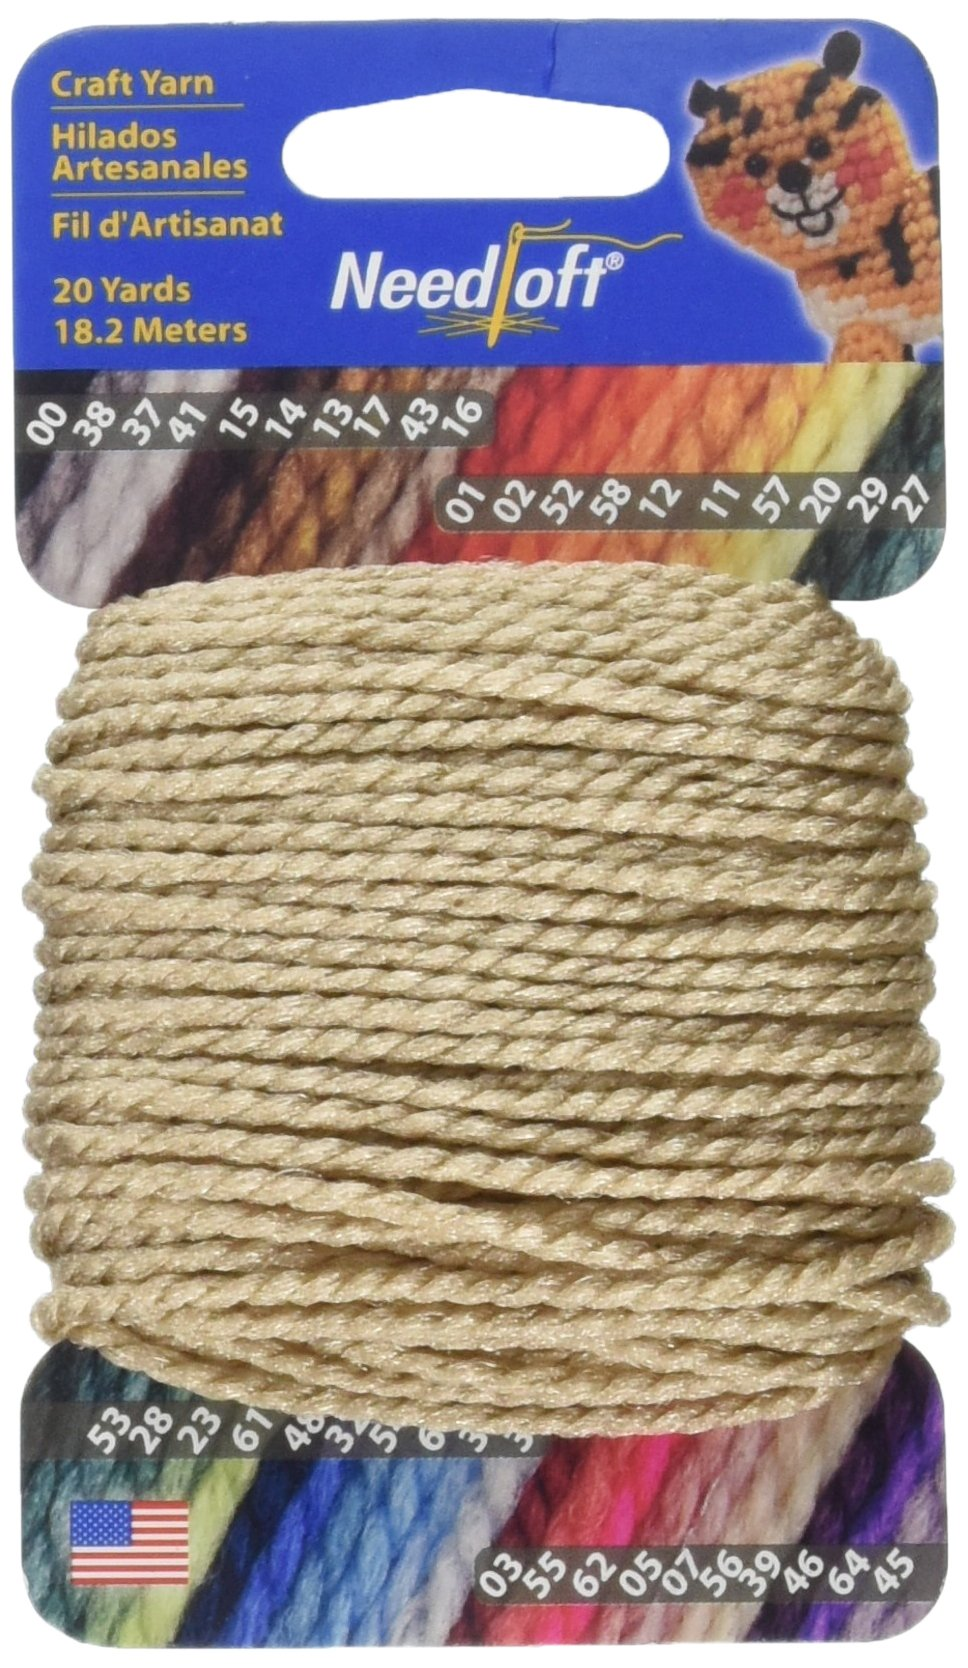 Cottage Mills Needloft Craft Yarn 20 Yards-Sandstone